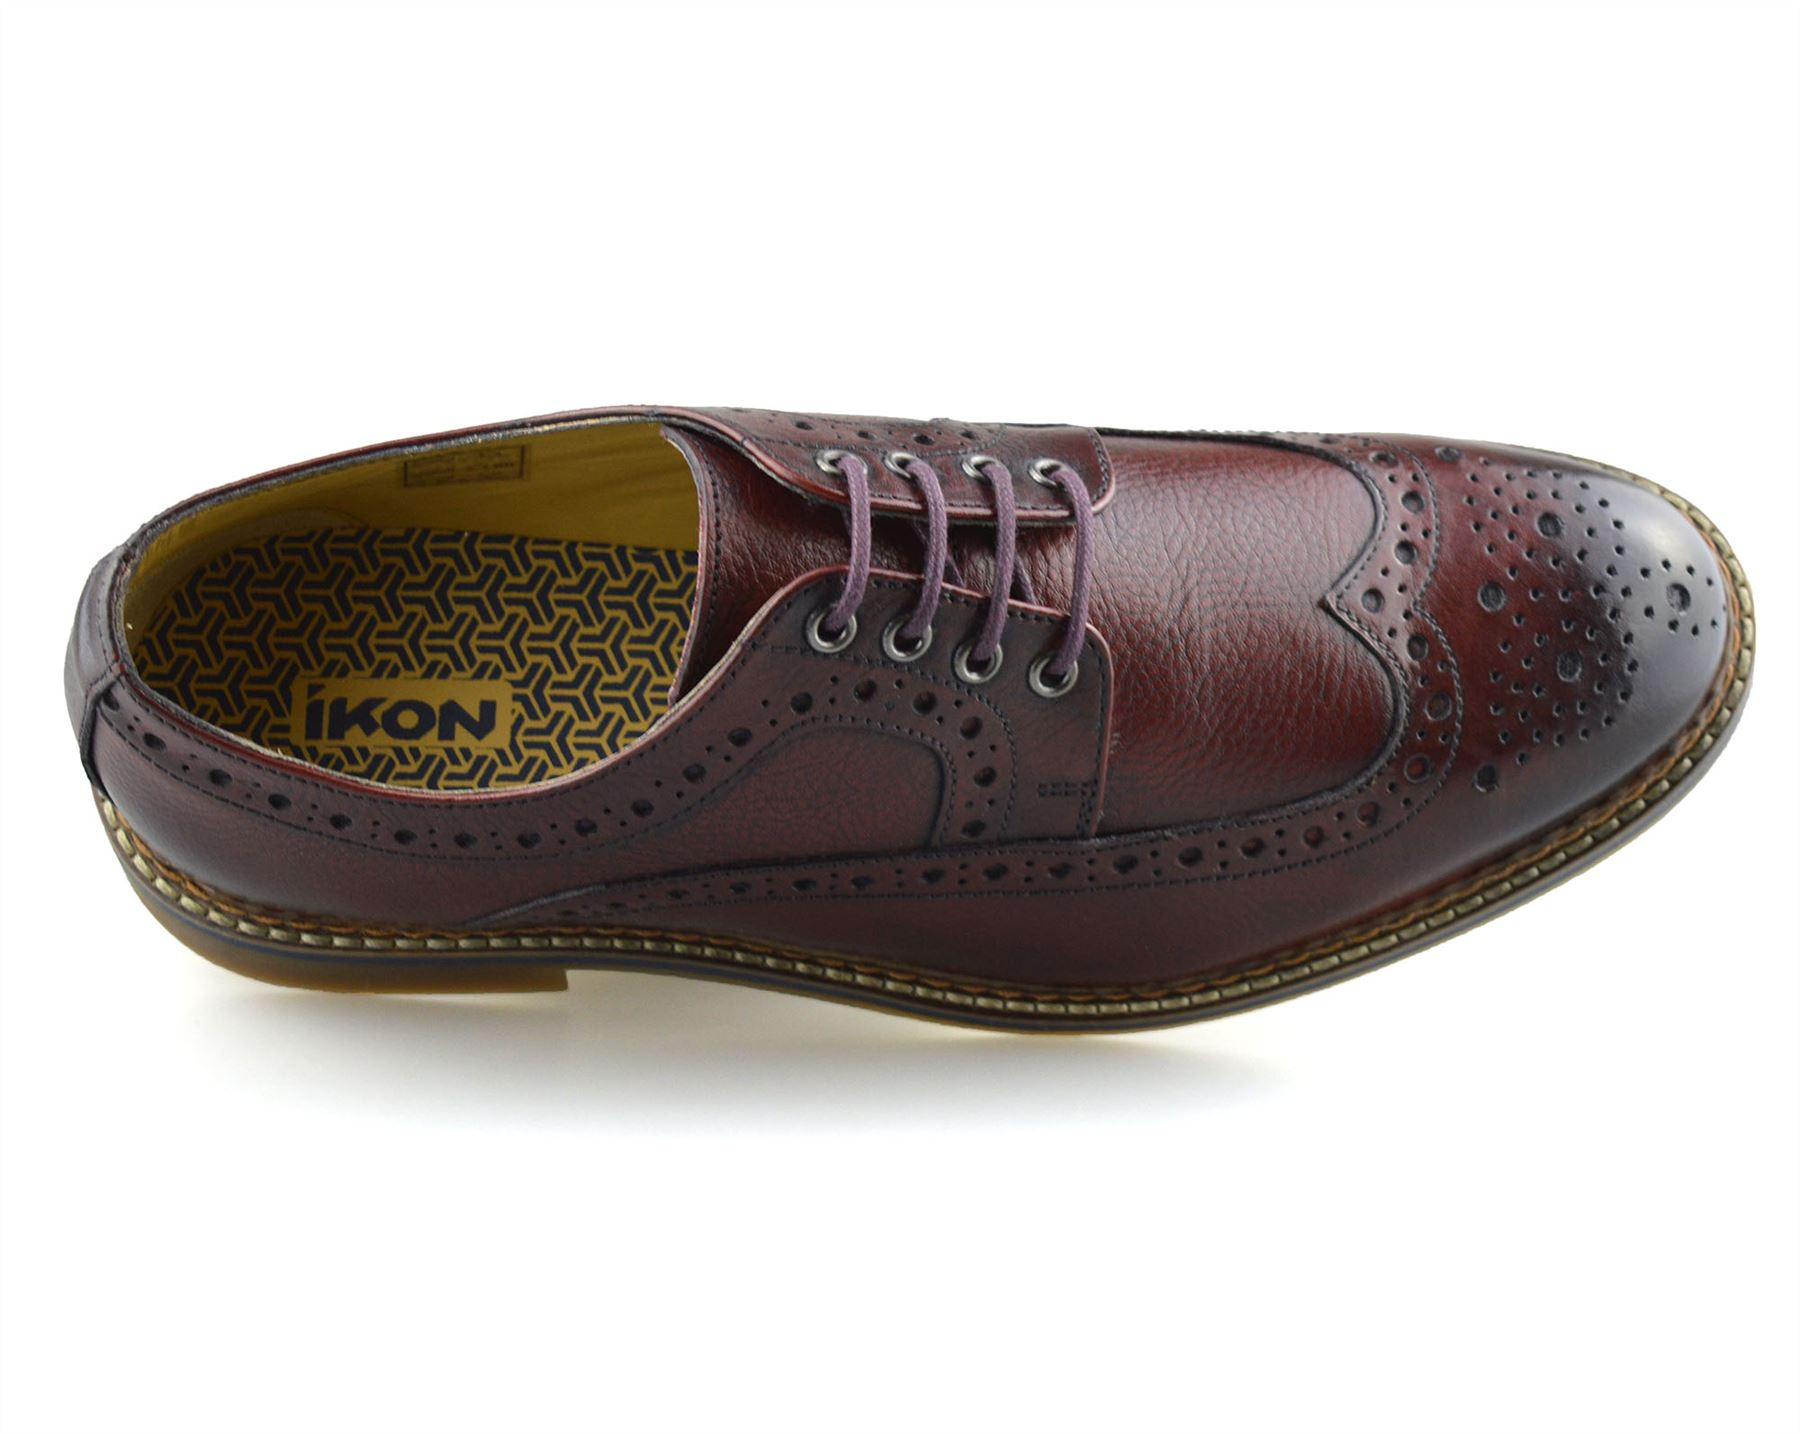 Mens-New-Ikon-Leather-Casual-Smart-Lace-Up-Oxford-Brogues-Work-Office-Shoes-Size thumbnail 29